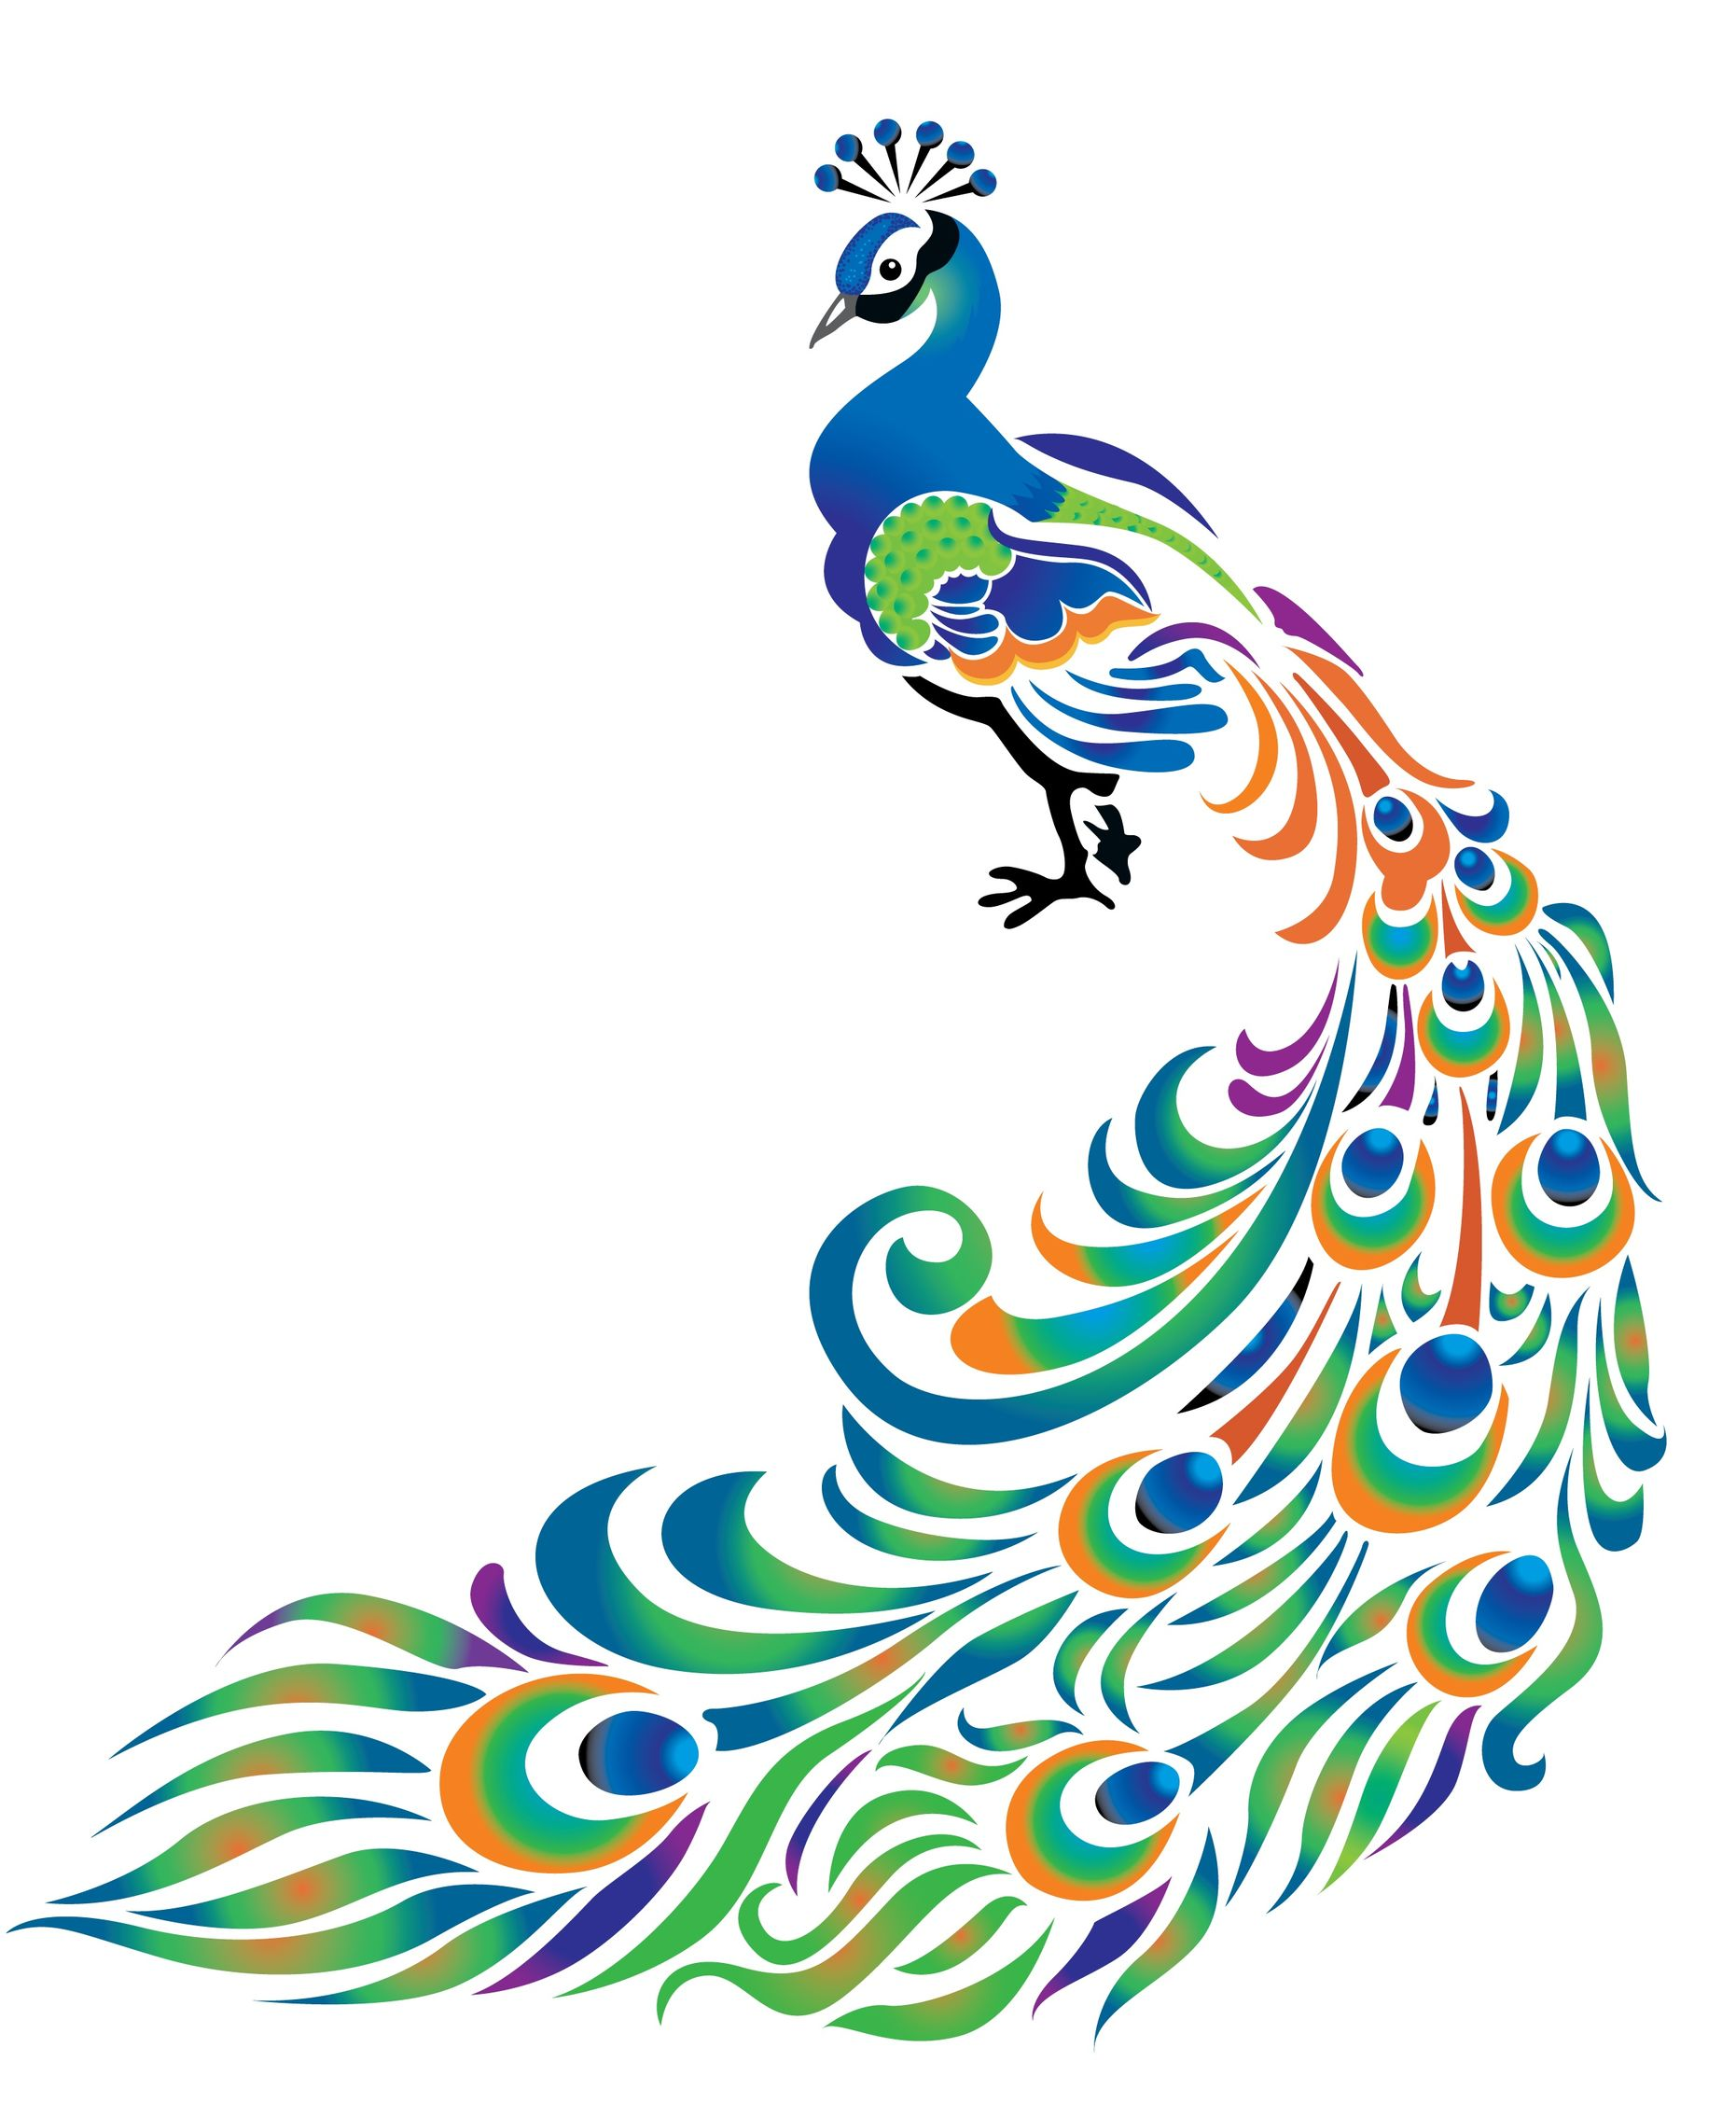 Ganesh rangoli designs coloring pages - Peacock Feather Border Designs